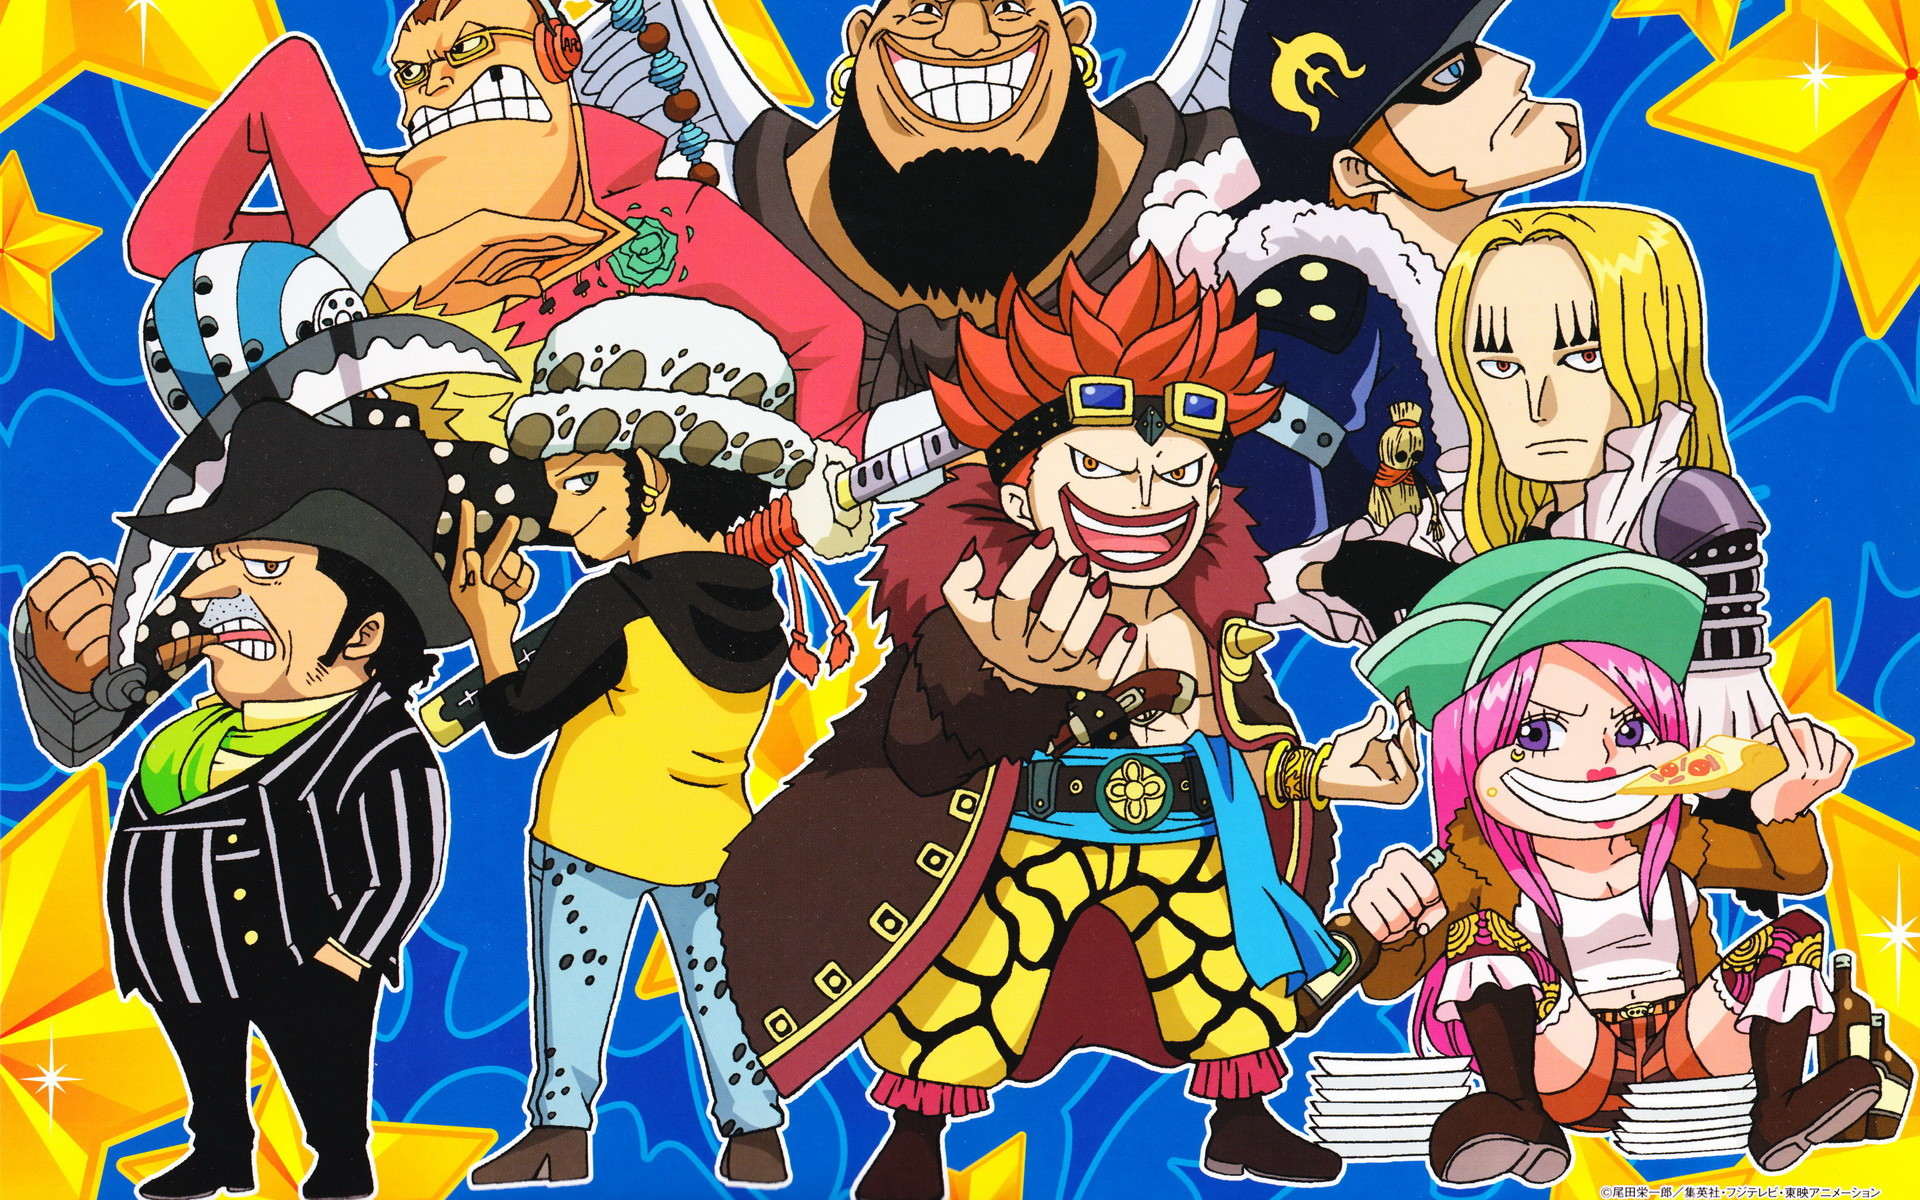 1920x1200 The supernovas - One Piece